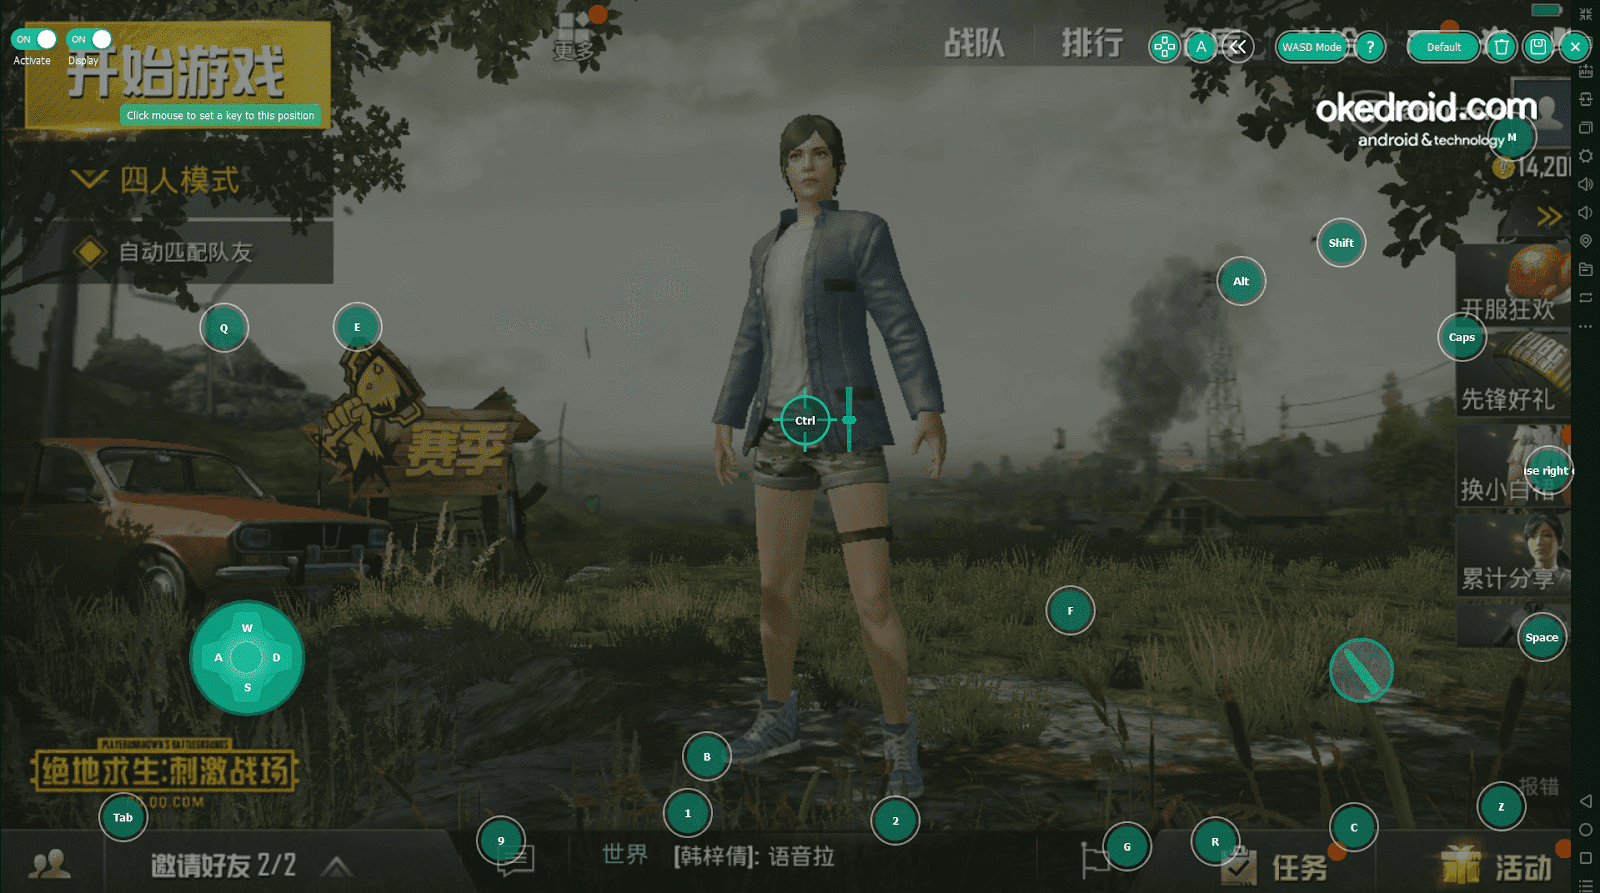 Tips Cara Main Game PUBG Mobile Versi China di PC atau